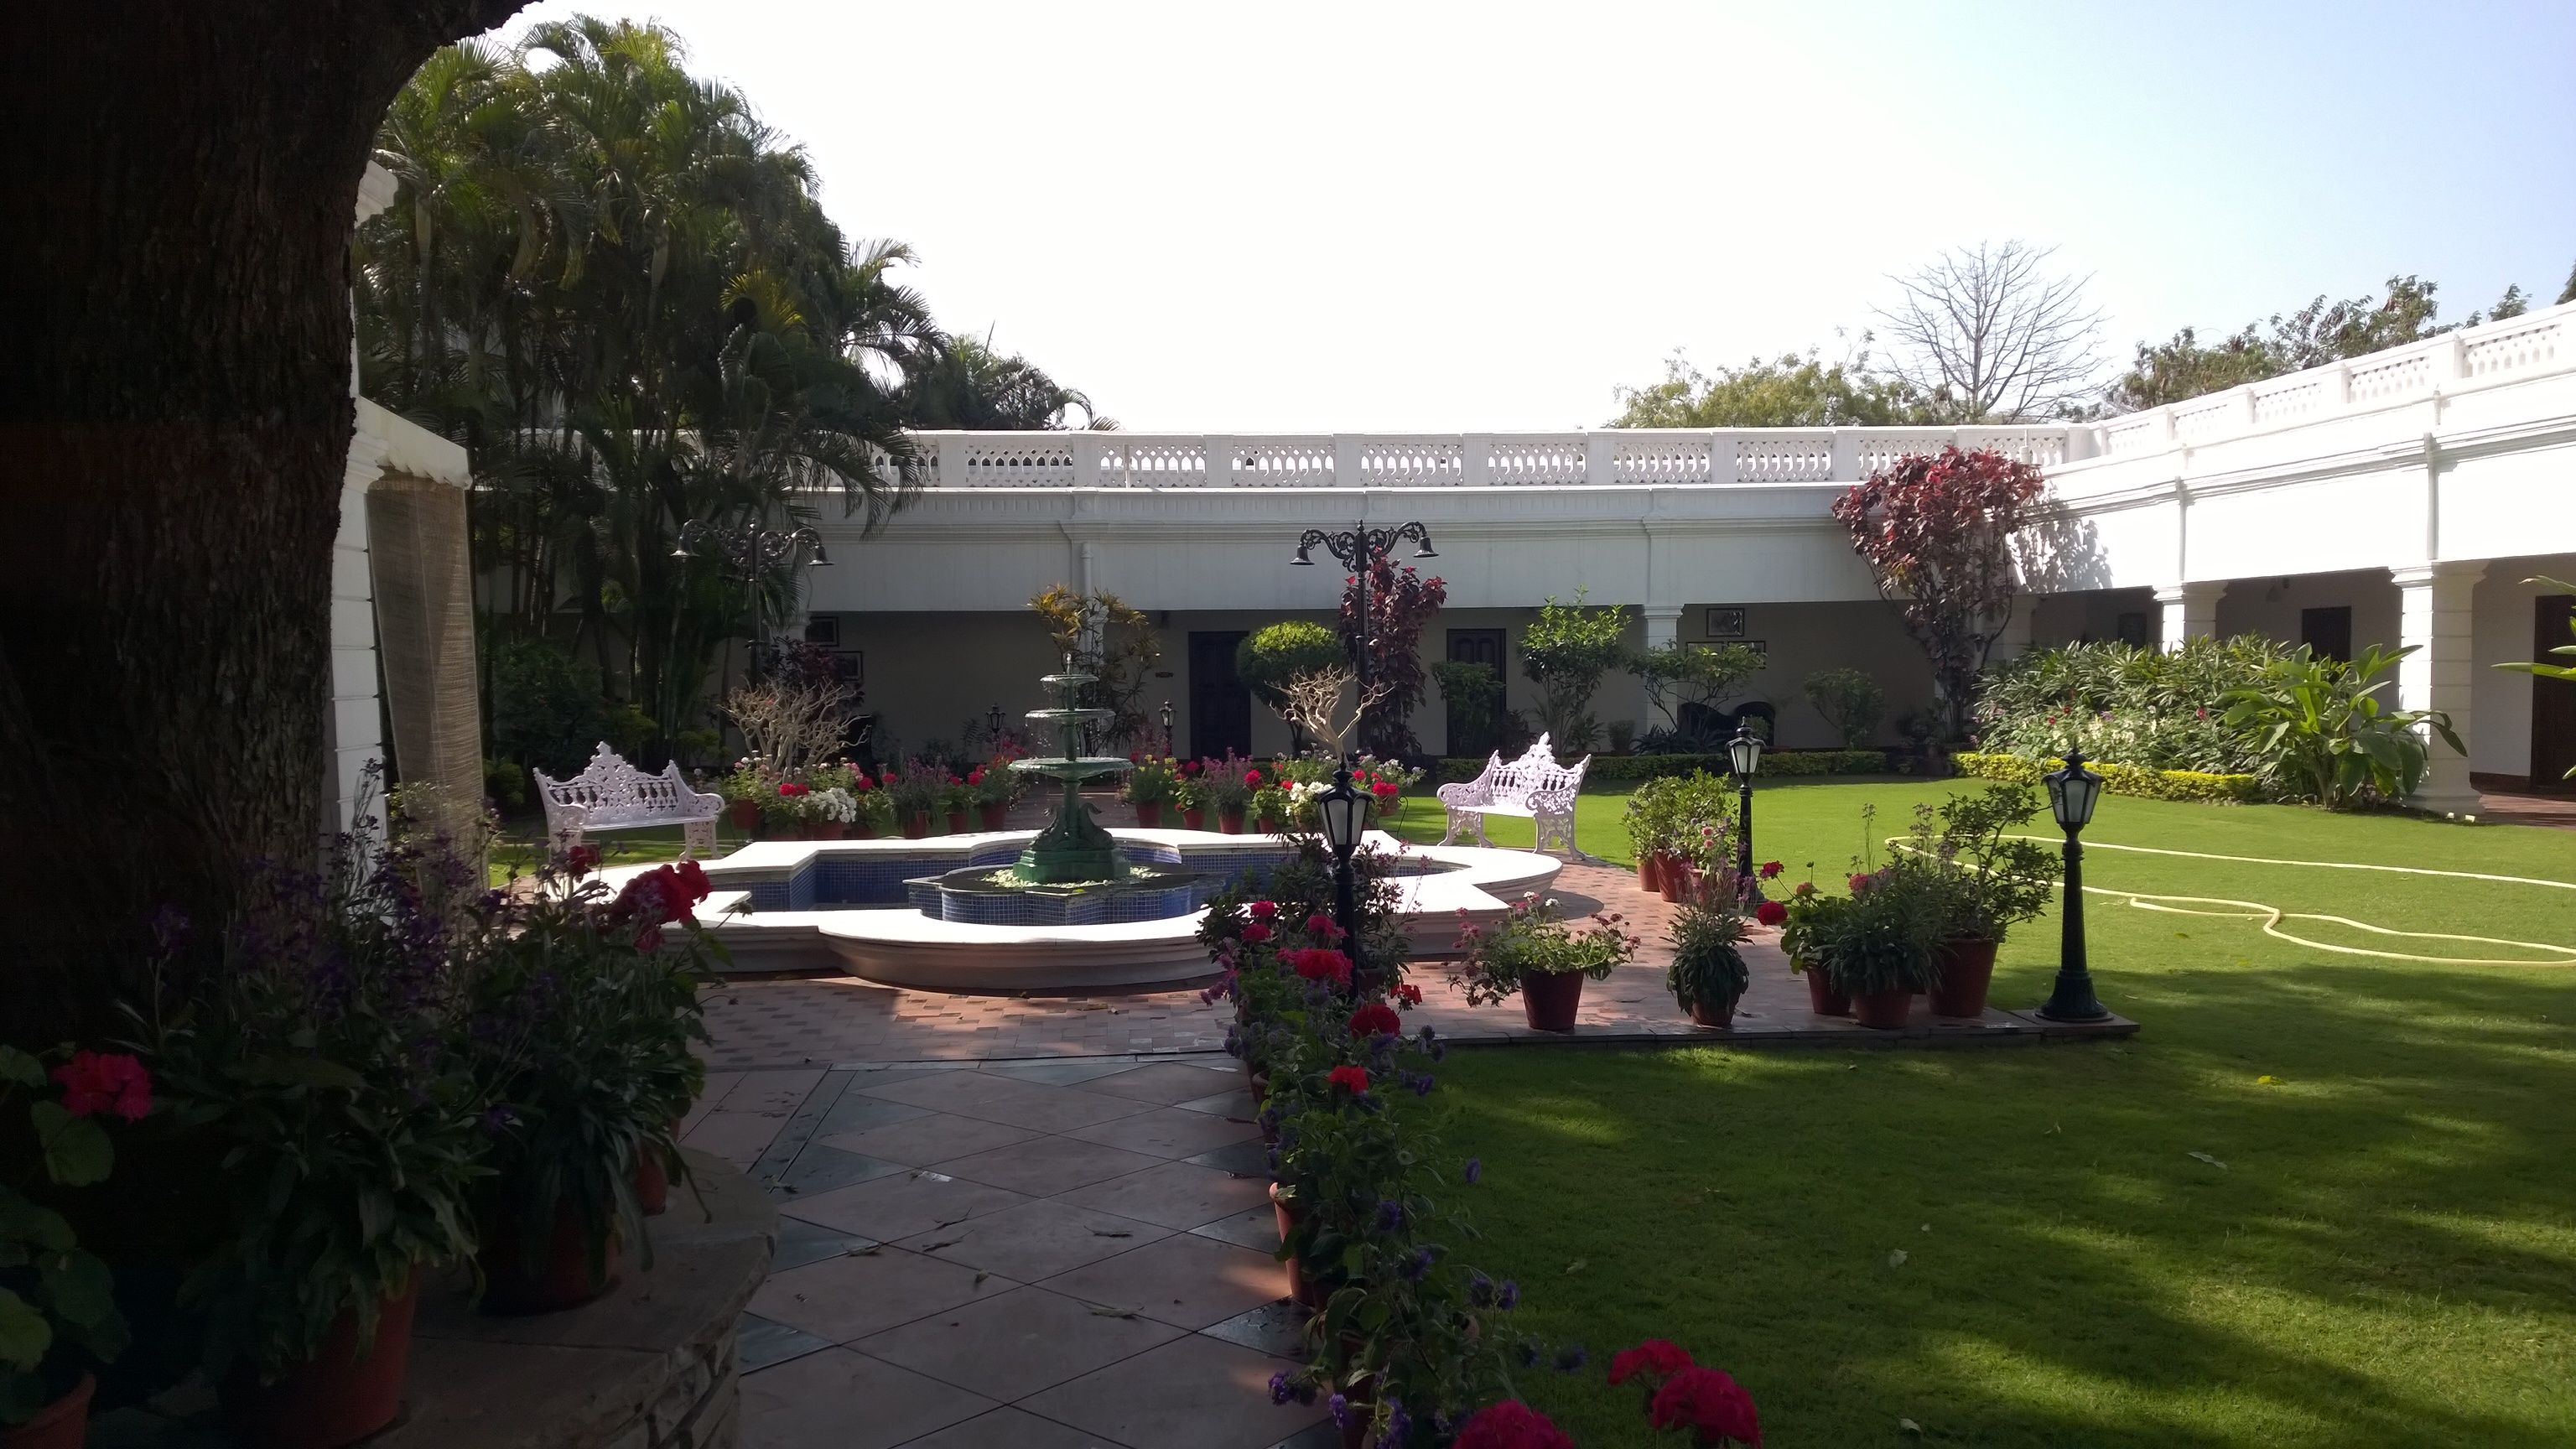 Review of Jehan Numa Palace in Bhopal